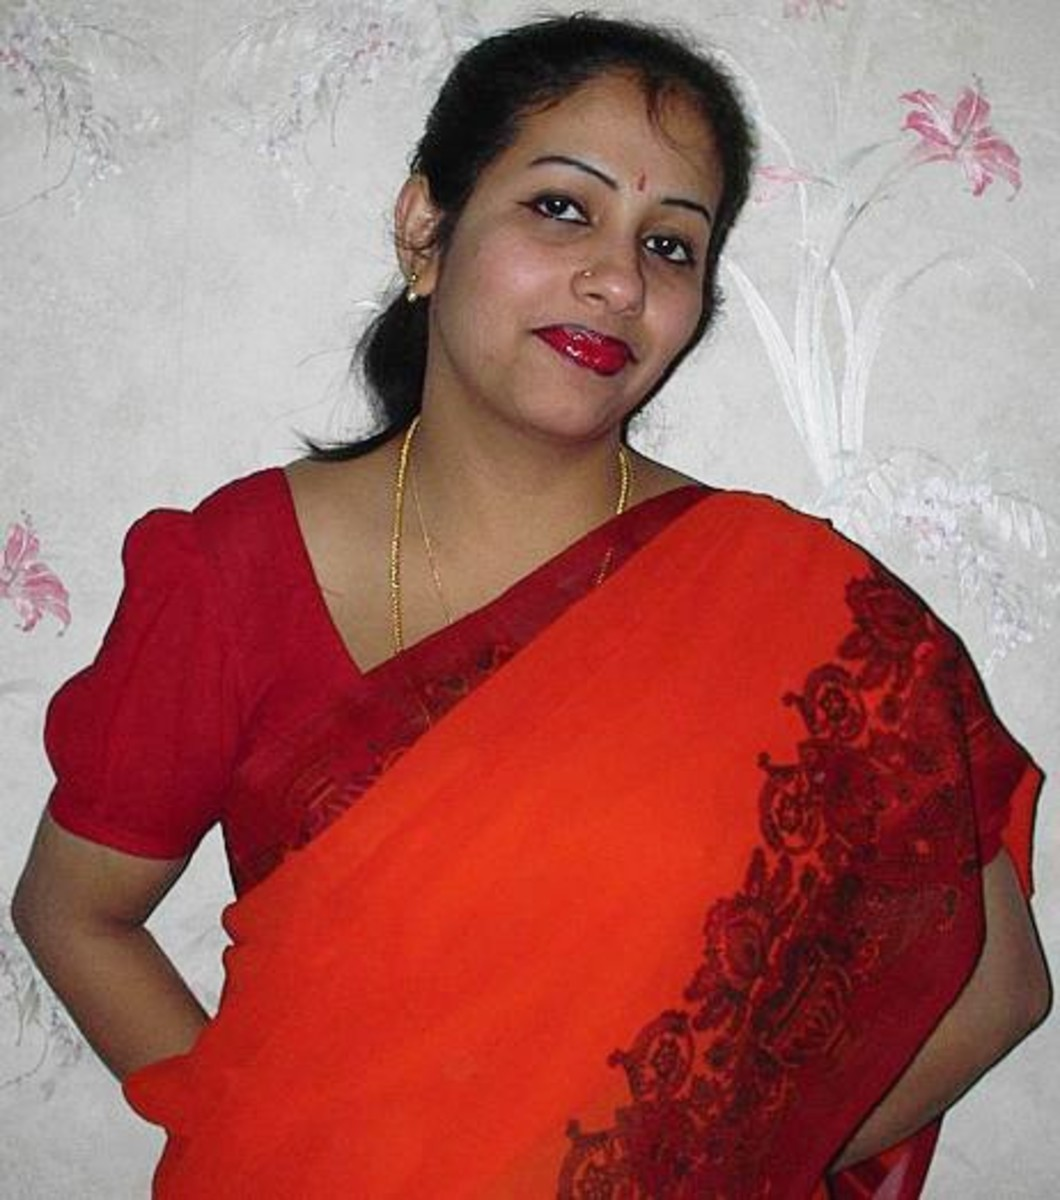 Mrs.Shobha-a housewife from south india, who is beautiful not just because of her features and colour, but also her soft nature, which is obvious in this picture. Such ladies are in large number throughout India